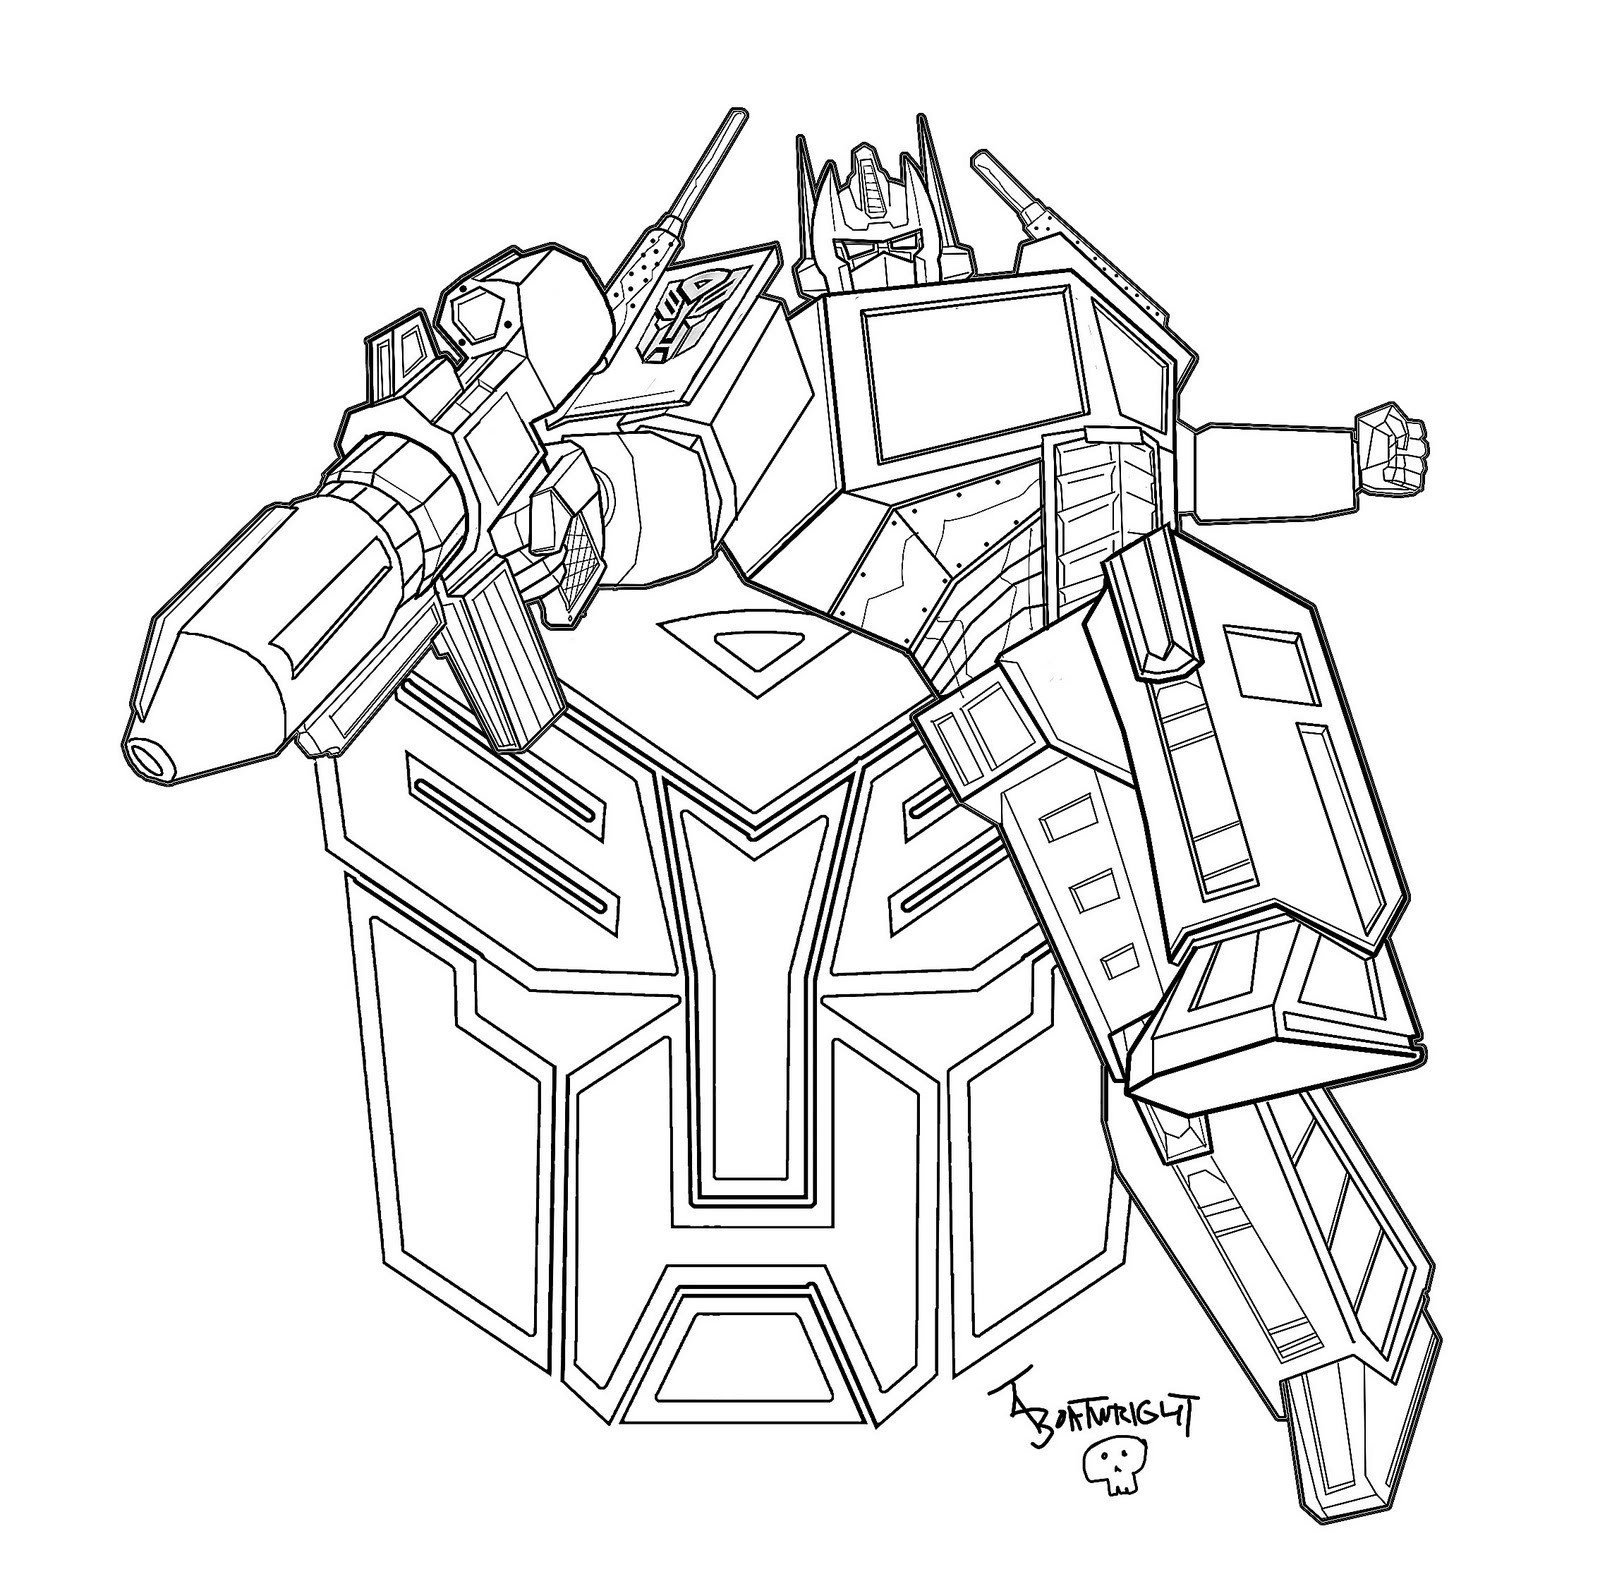 Best ideas about Transformers Free Coloring Pages . Save or Pin Free Printable Transformers Coloring Pages For Kids Now.